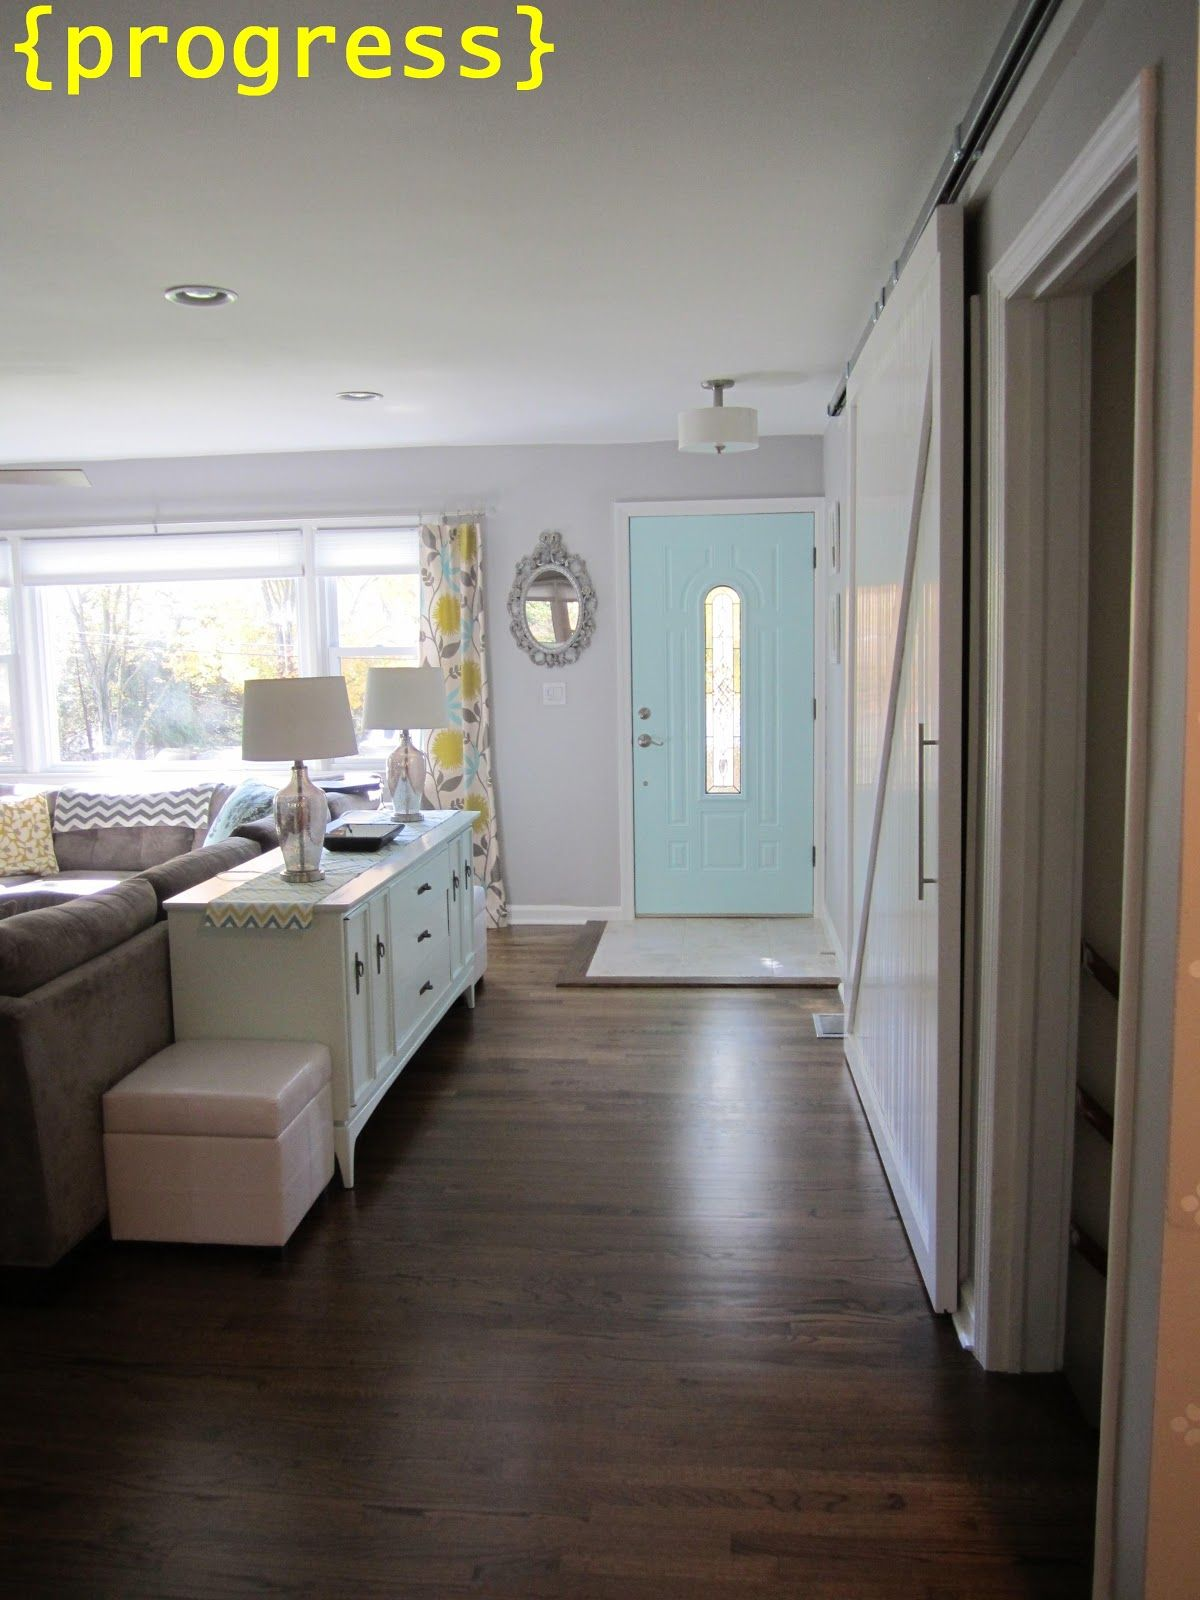 Retro Ranch Reno The Start Of A House Tour Remodeling Ideas Pinterest House Tours And Ranch